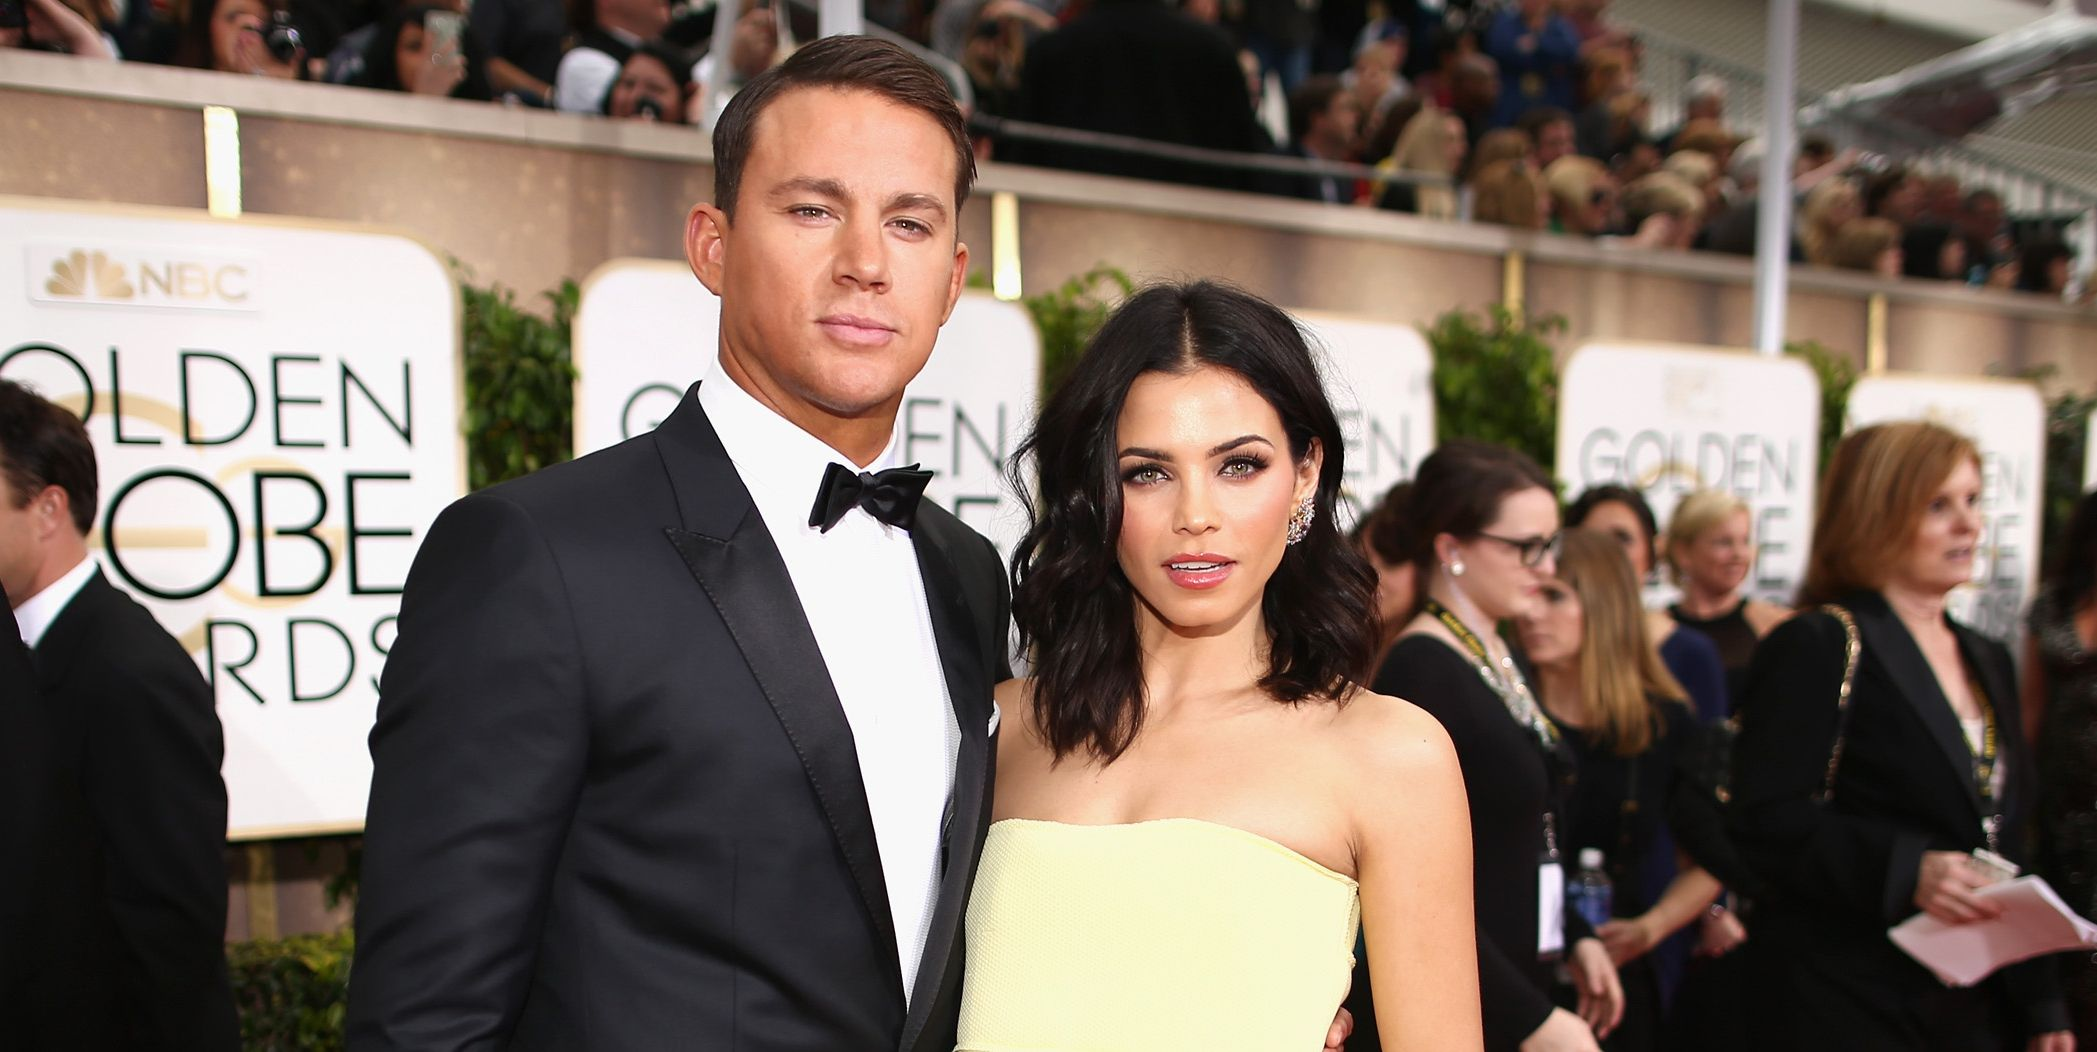 NBC's '72nd Annual Golden Globe Awards' - Red Carpet Arrivals